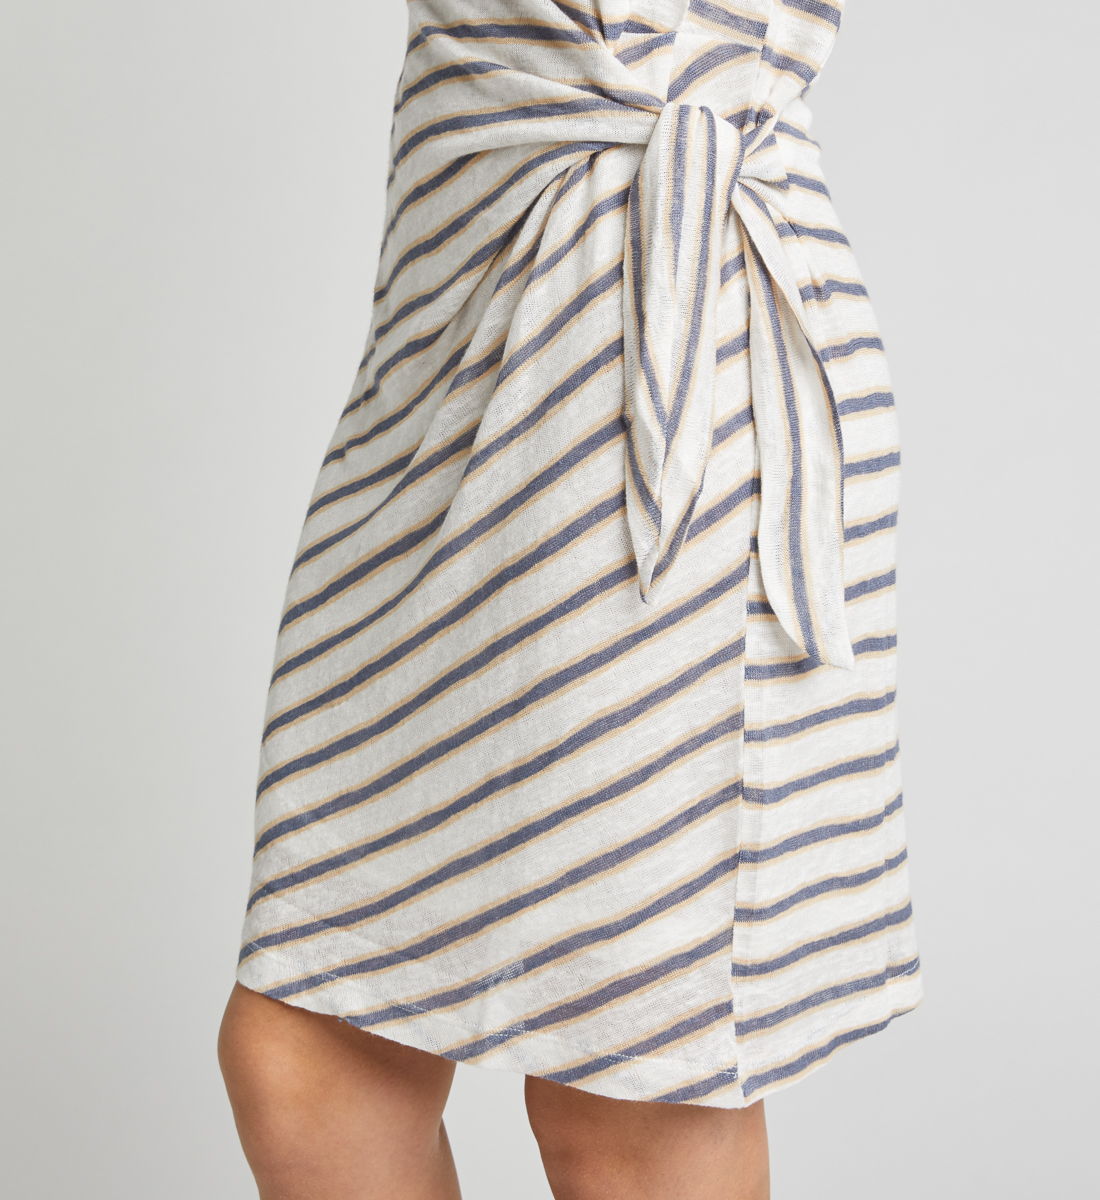 Arlene Side-Knot Striped Dress,White Alt Image 1